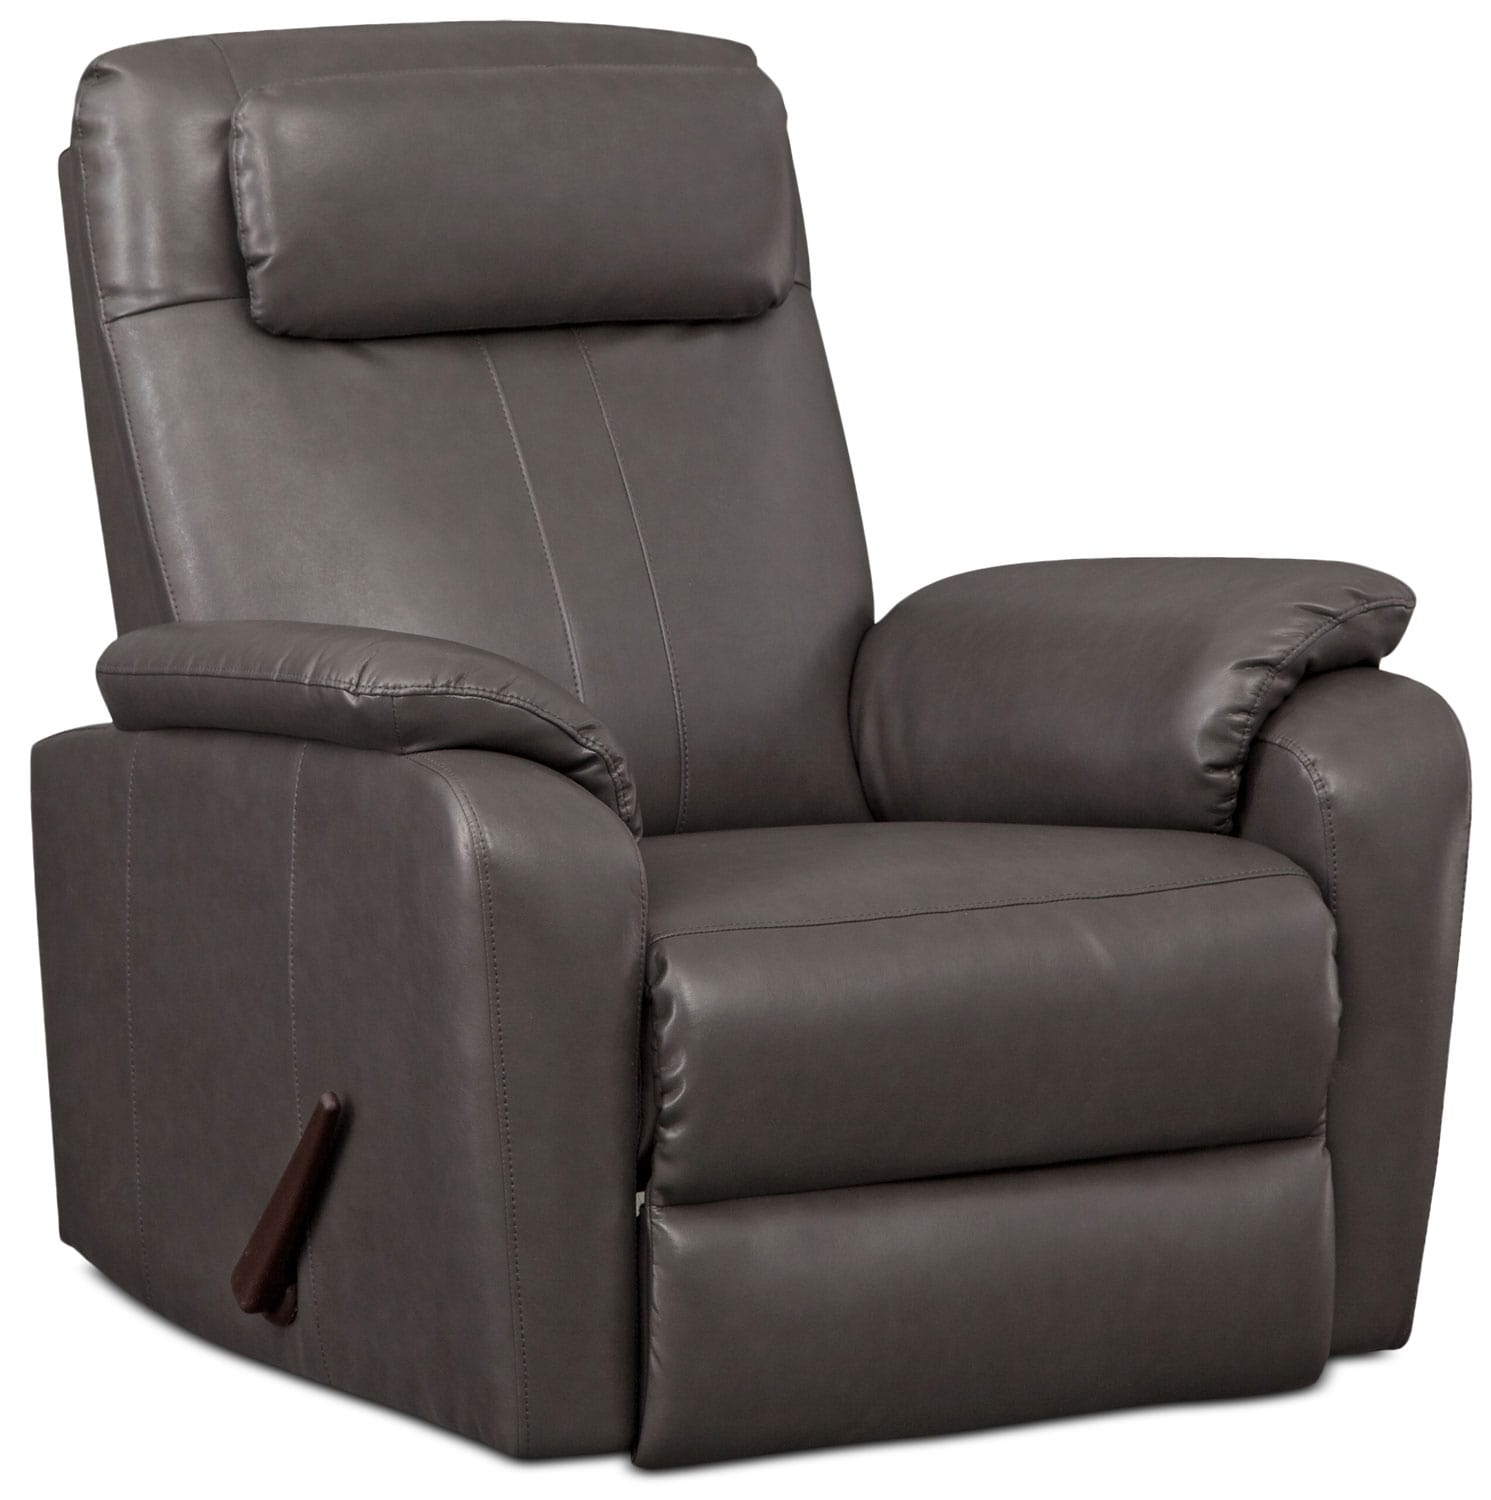 Sparta Rocker Recliner | Value City Furniture and Mattresses on Sparta Outdoor Living id=33059